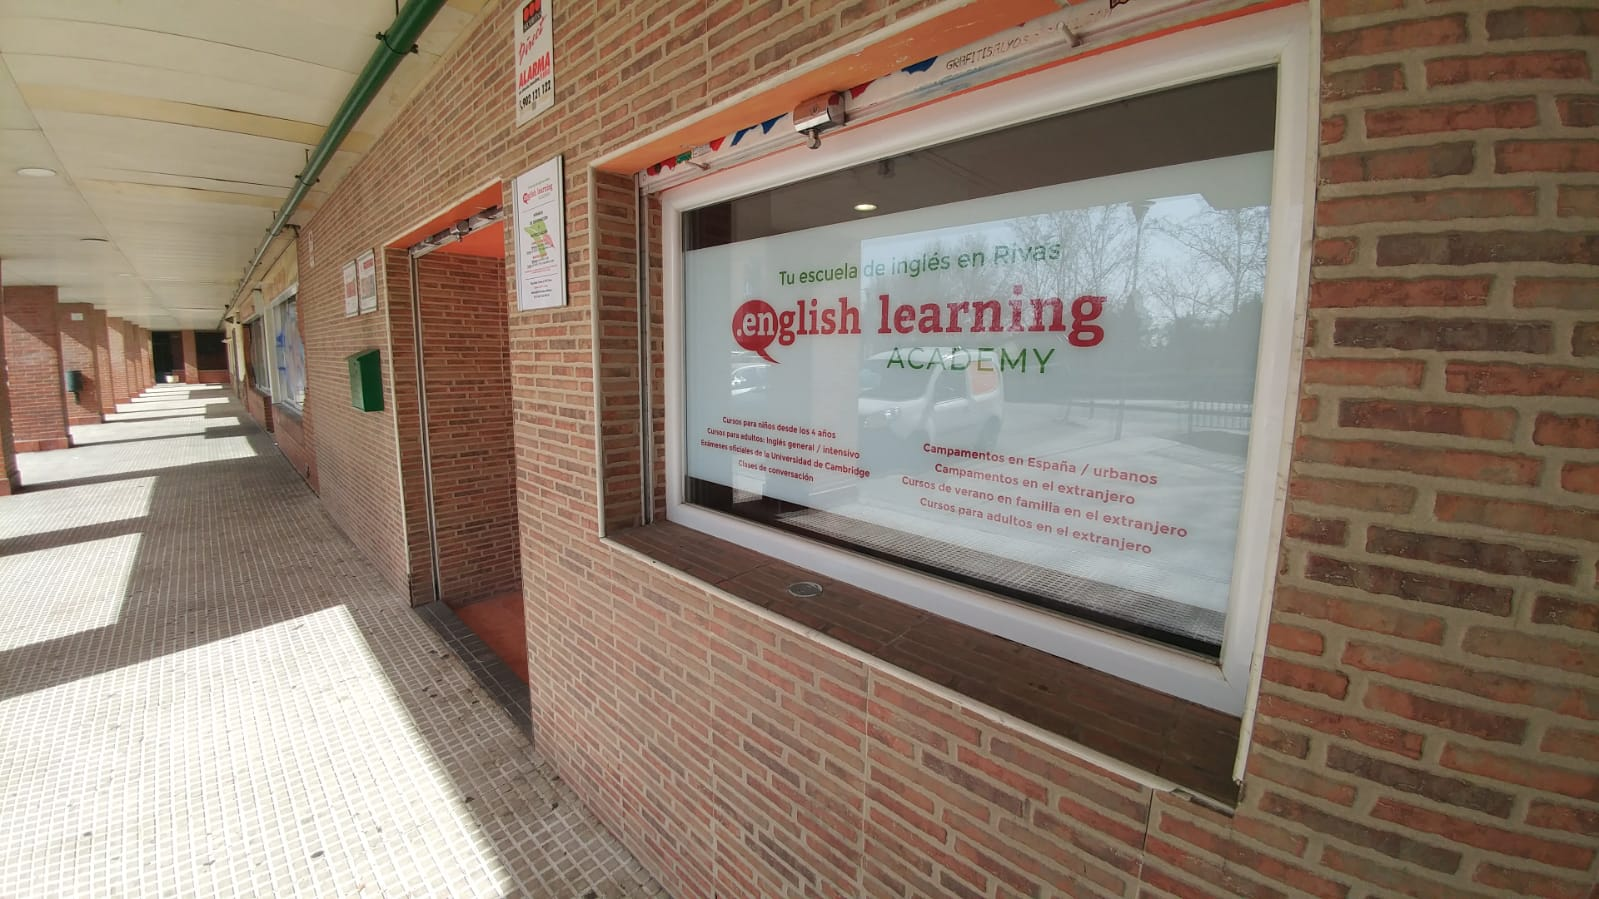 Exterior academia de ingles rivas English Learning Academy